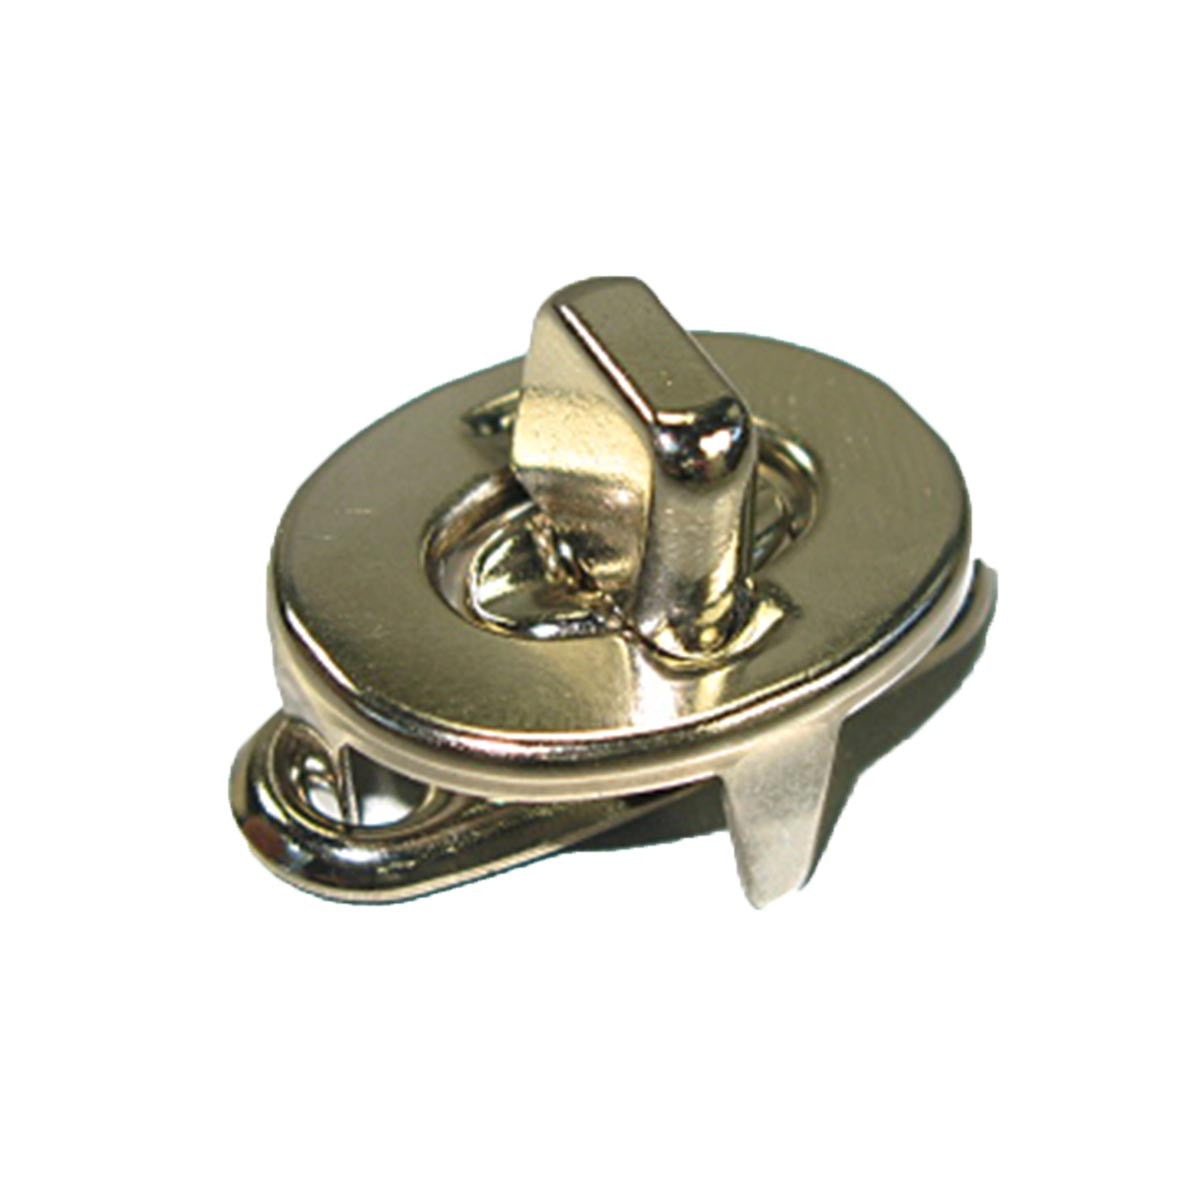 Oval Turnlock Case Clasp